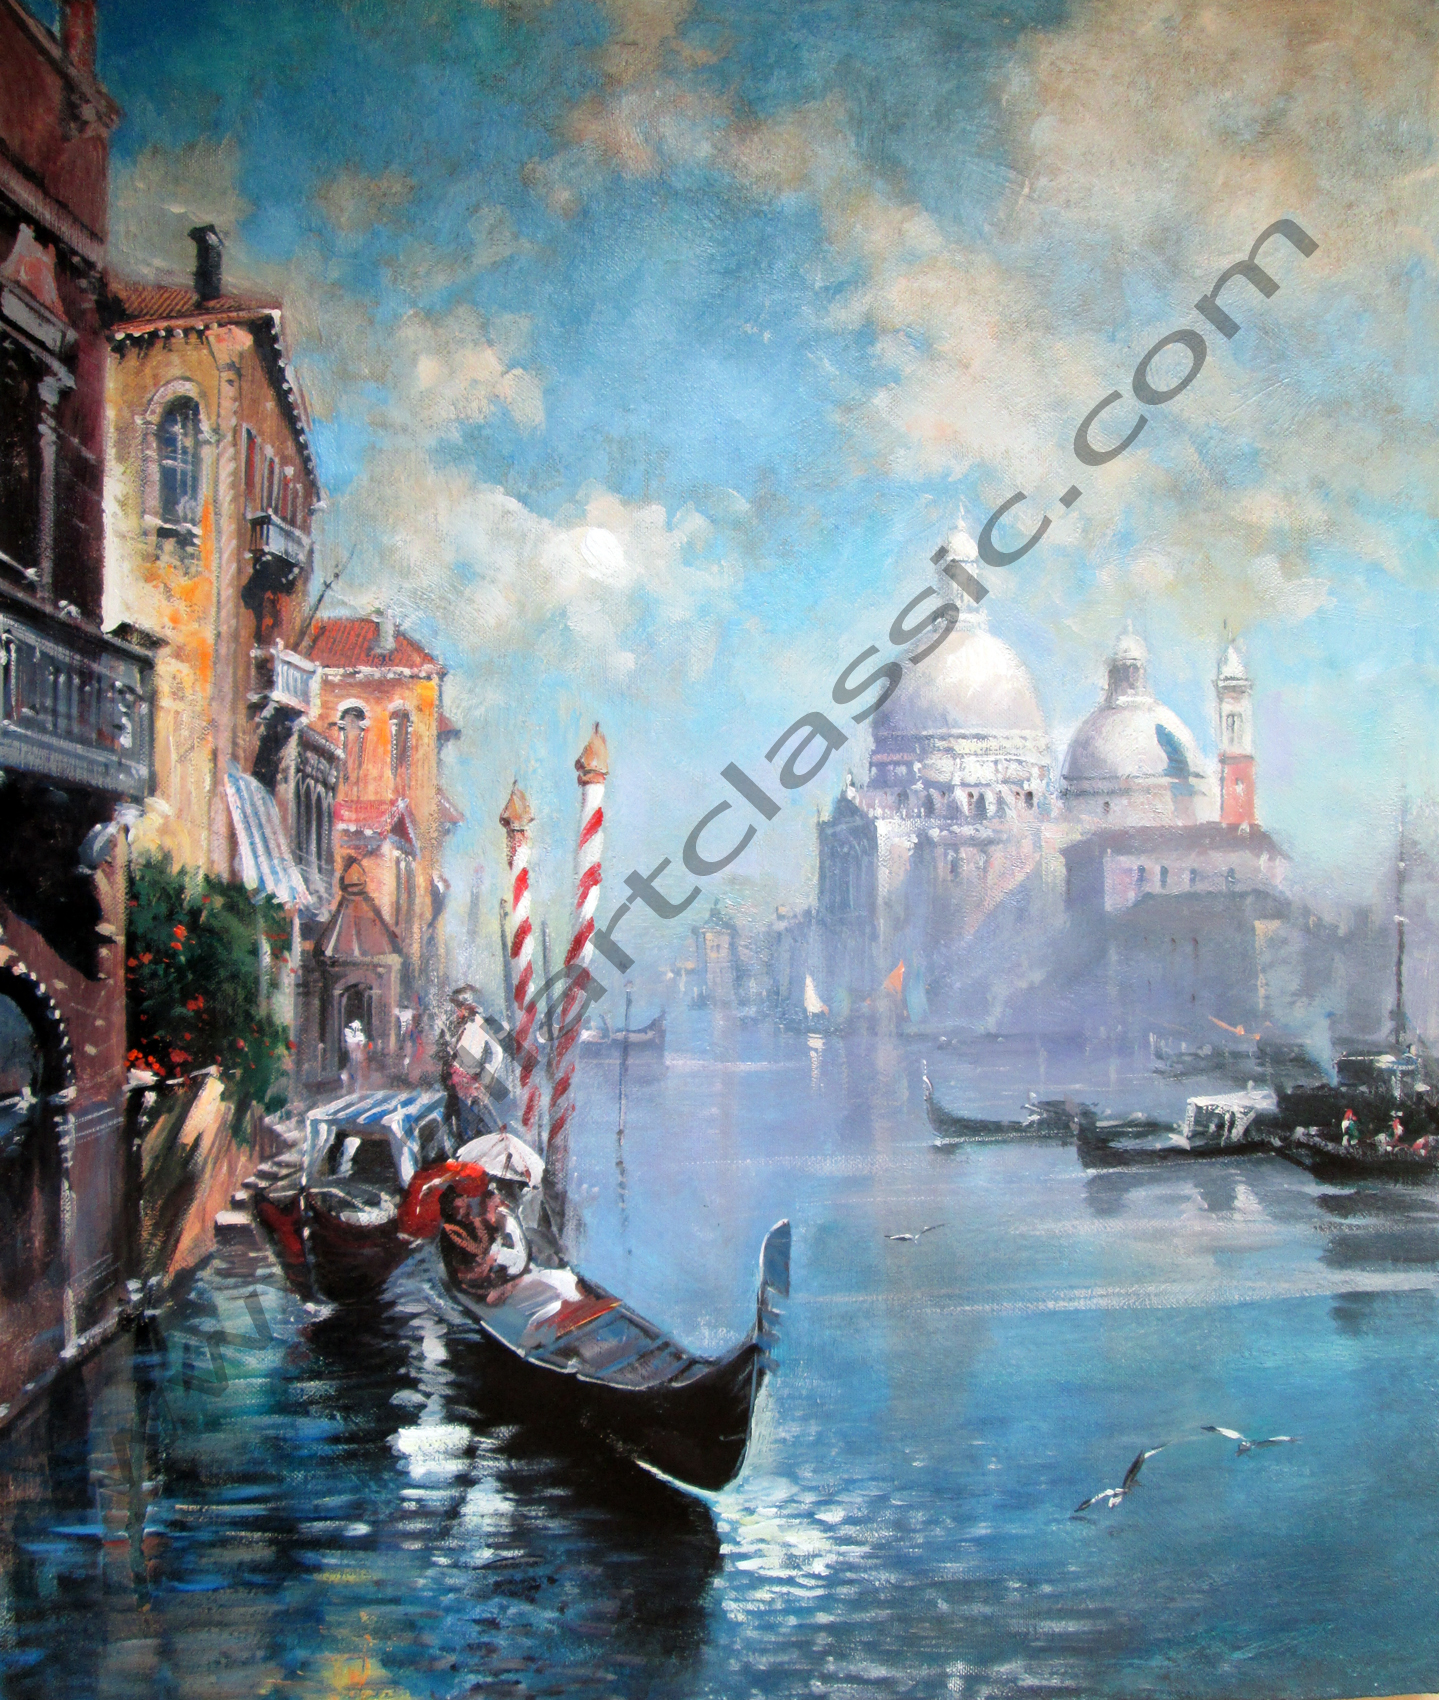 Original Oil Painting - Venice Landscape, The Grand Canal